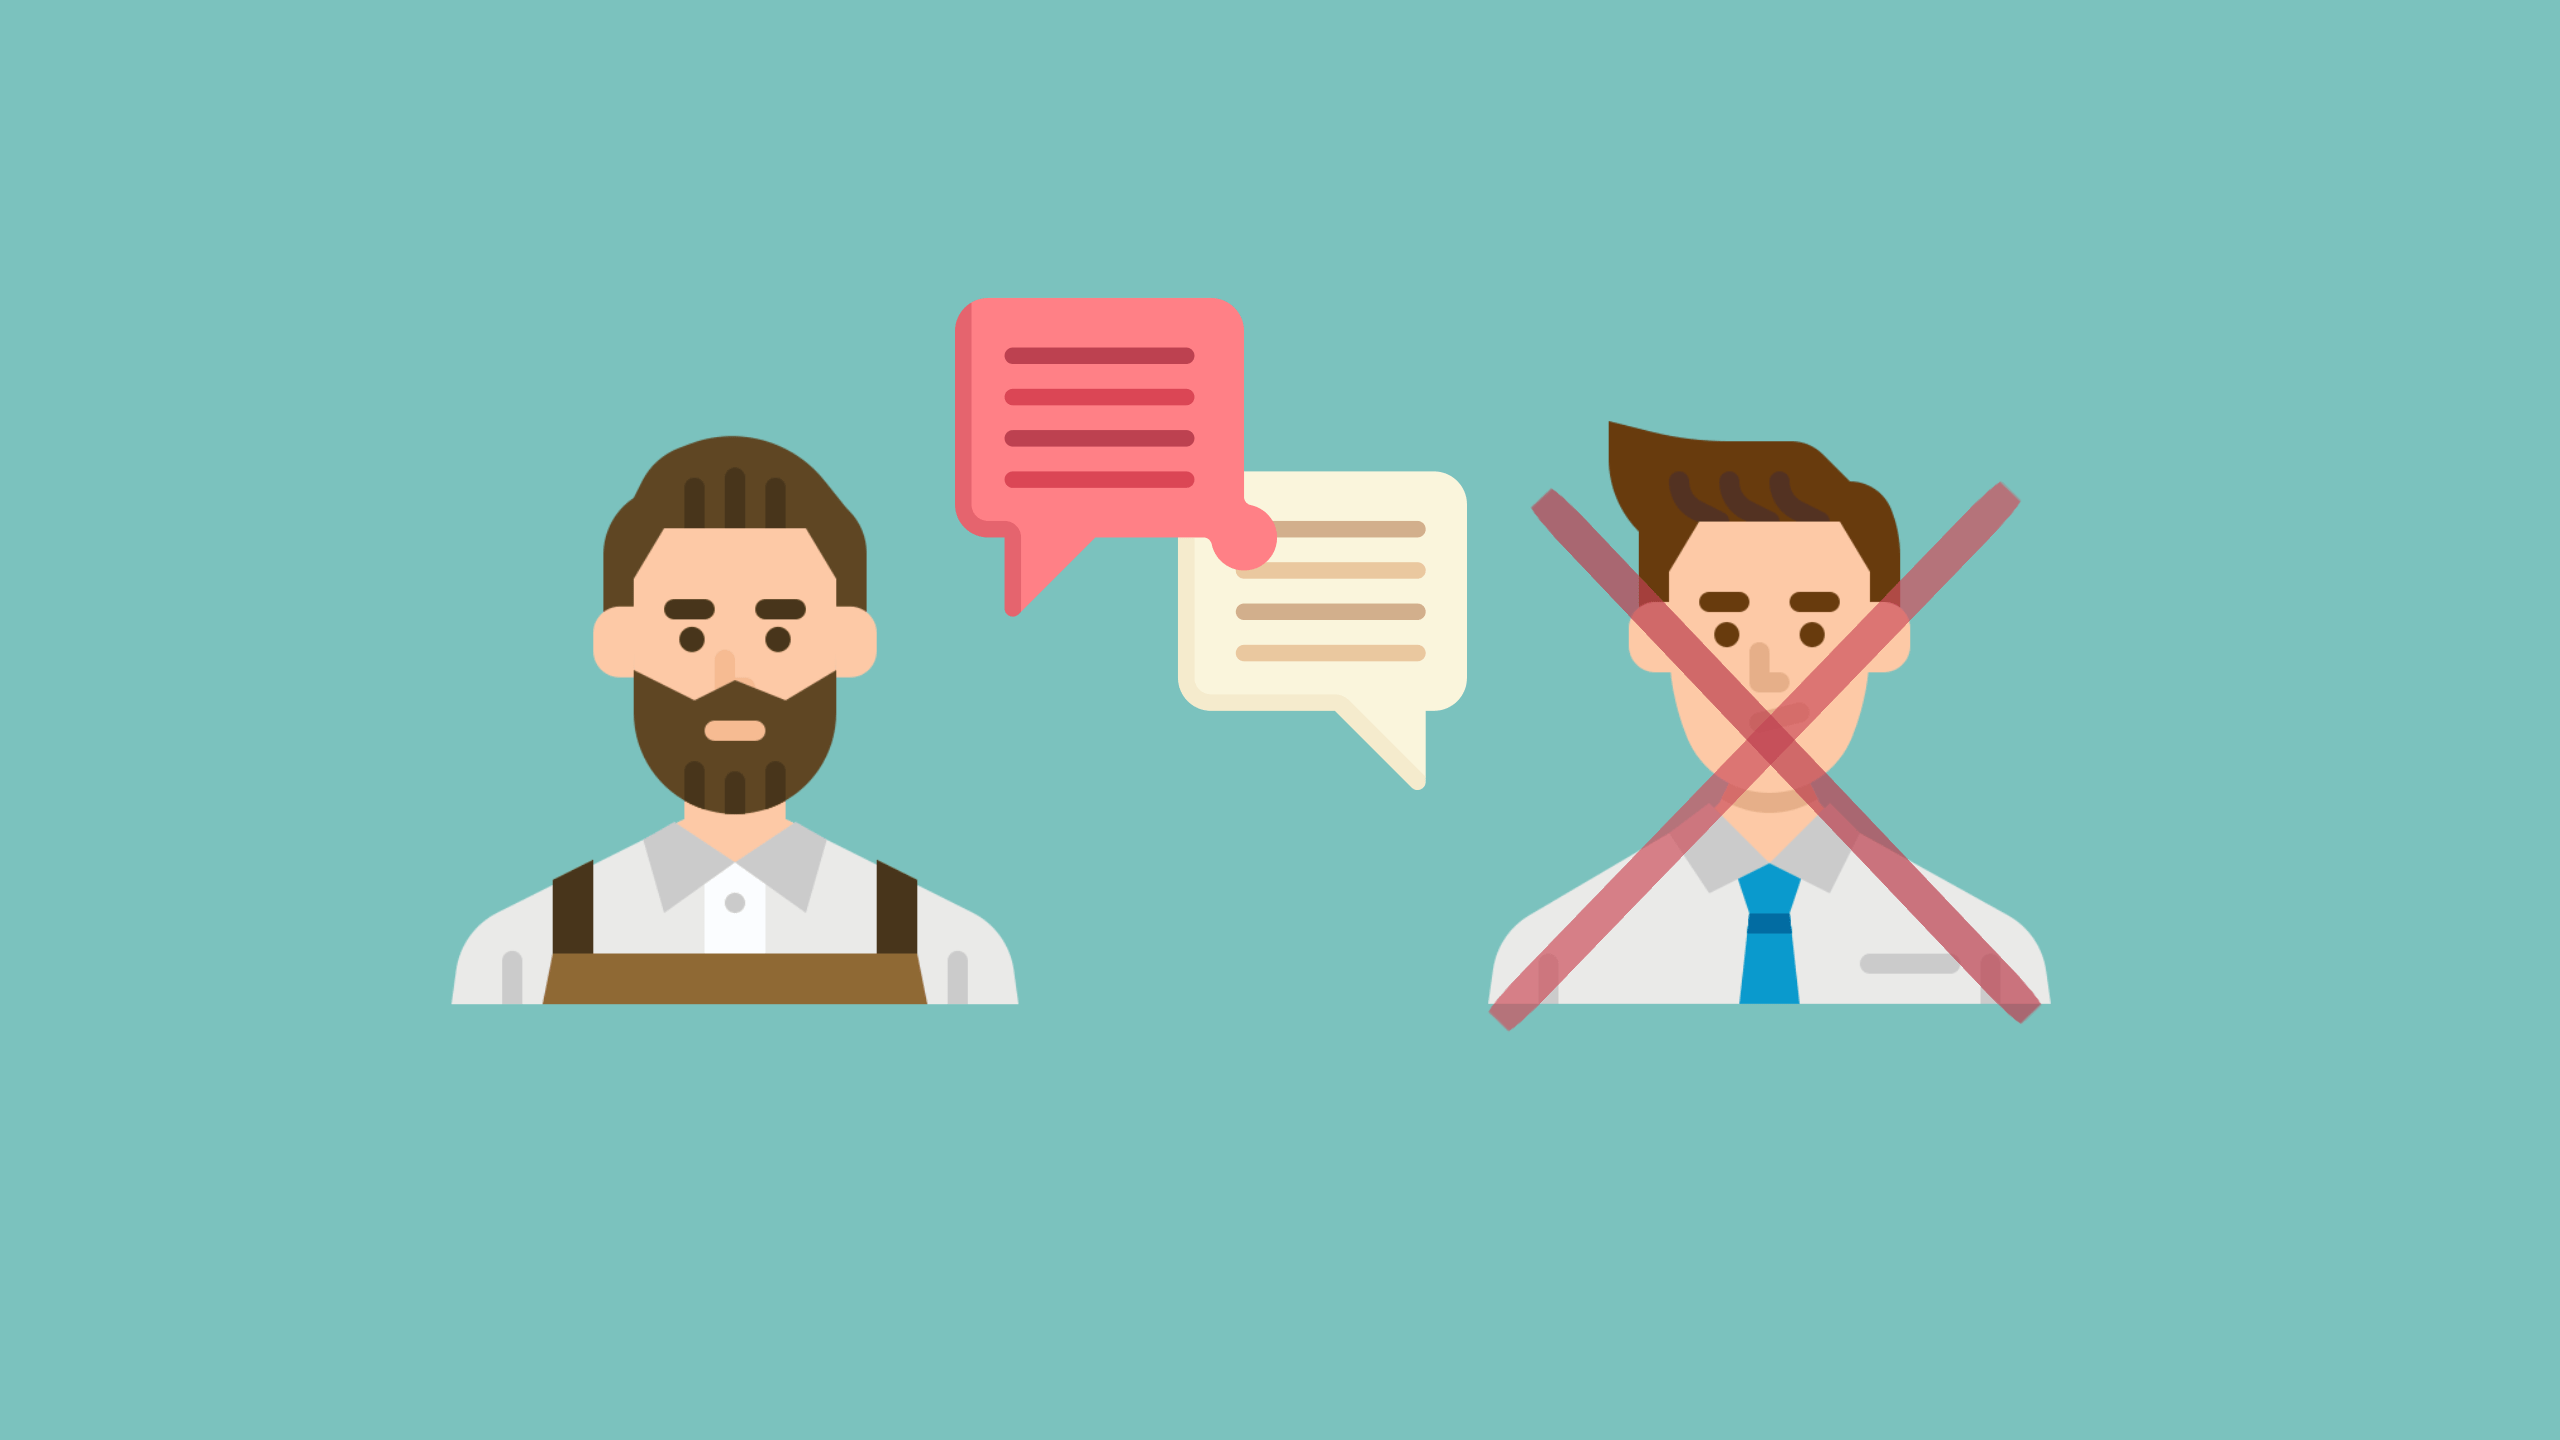 A graphic image of two men speaking but one is crossed out to show that there is no IELTS speaking partner